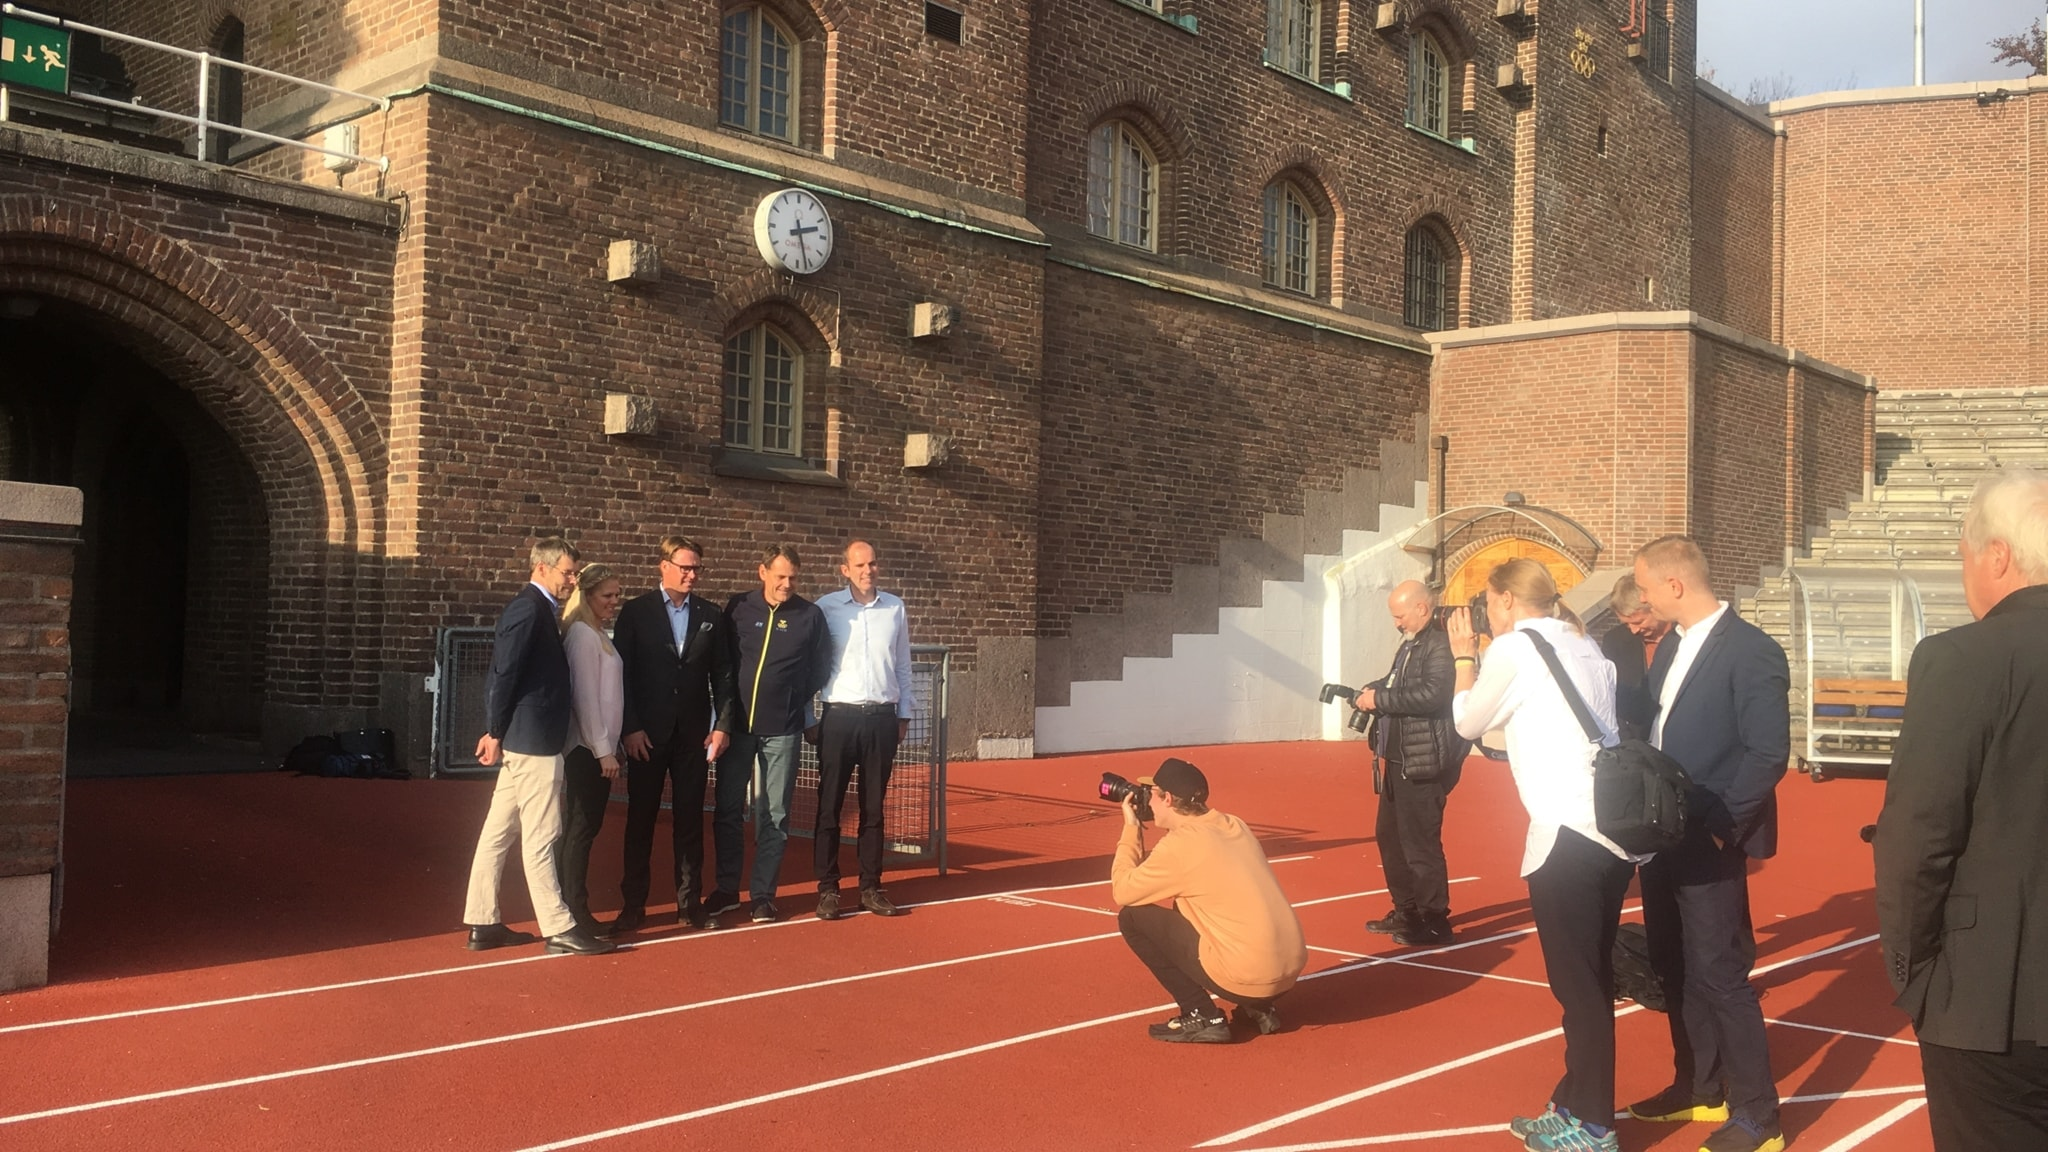 Stockholm Olympic campaign presses on - despite lack of political support - Radio Sweden